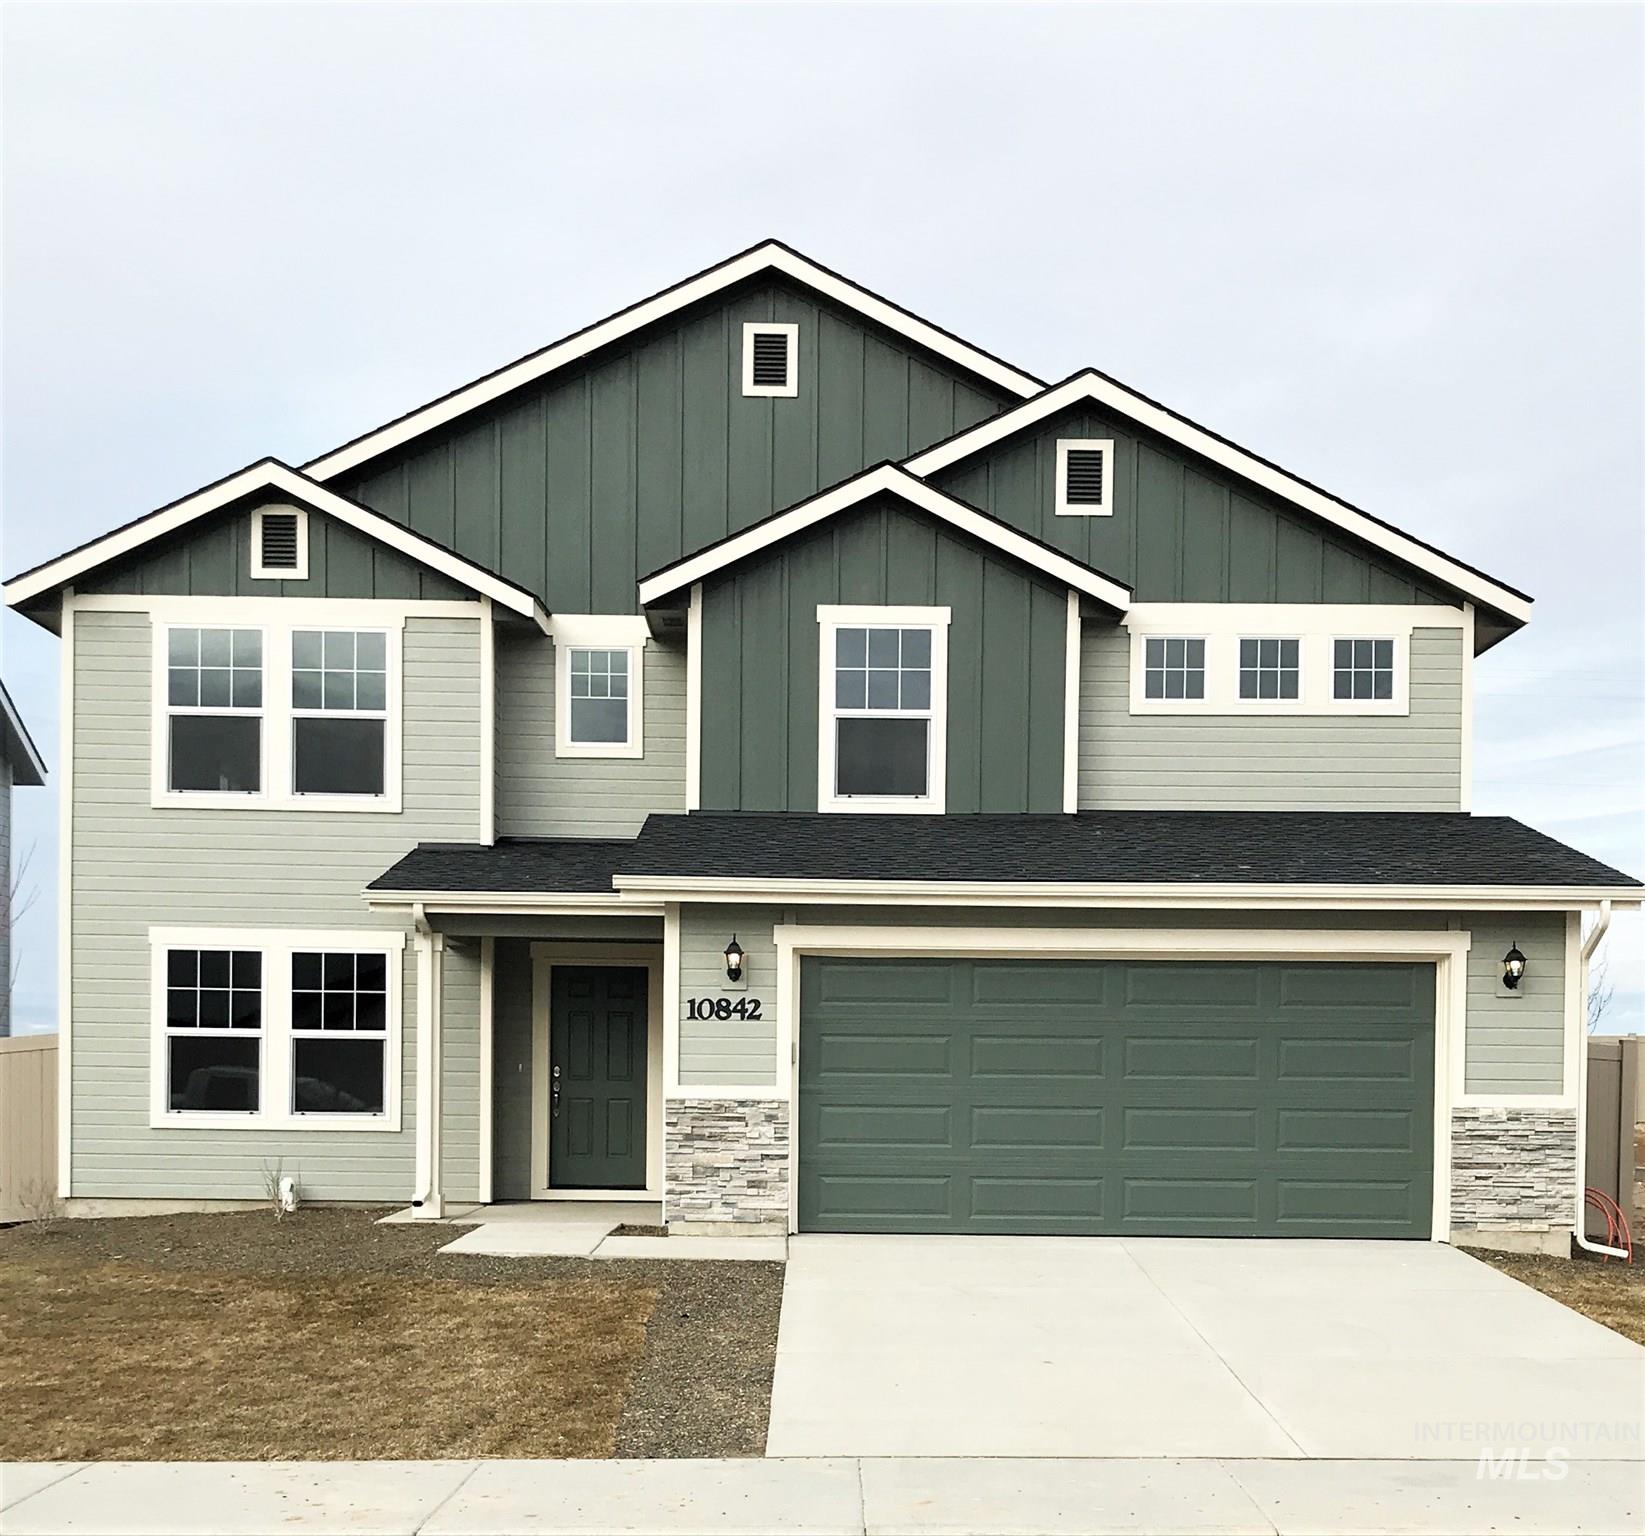 10842 Armuth St., Caldwell, Idaho 83605, 4 Bedrooms, 2.5 Bathrooms, Residential For Sale, Price $389,990, 98787889